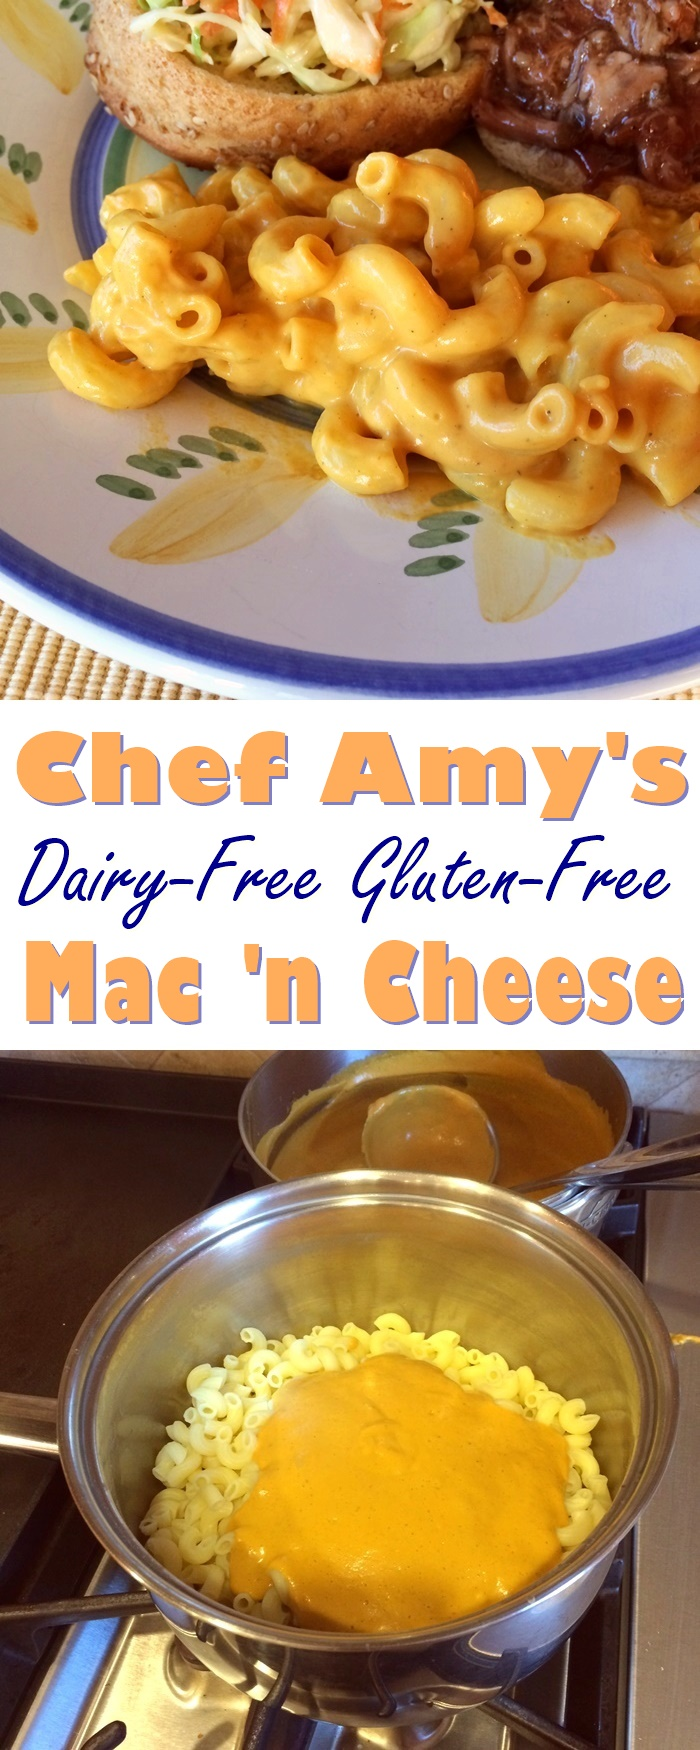 Chef Amy's Gluten-Free Dairy-Free Macaroni and Cheese Recipe